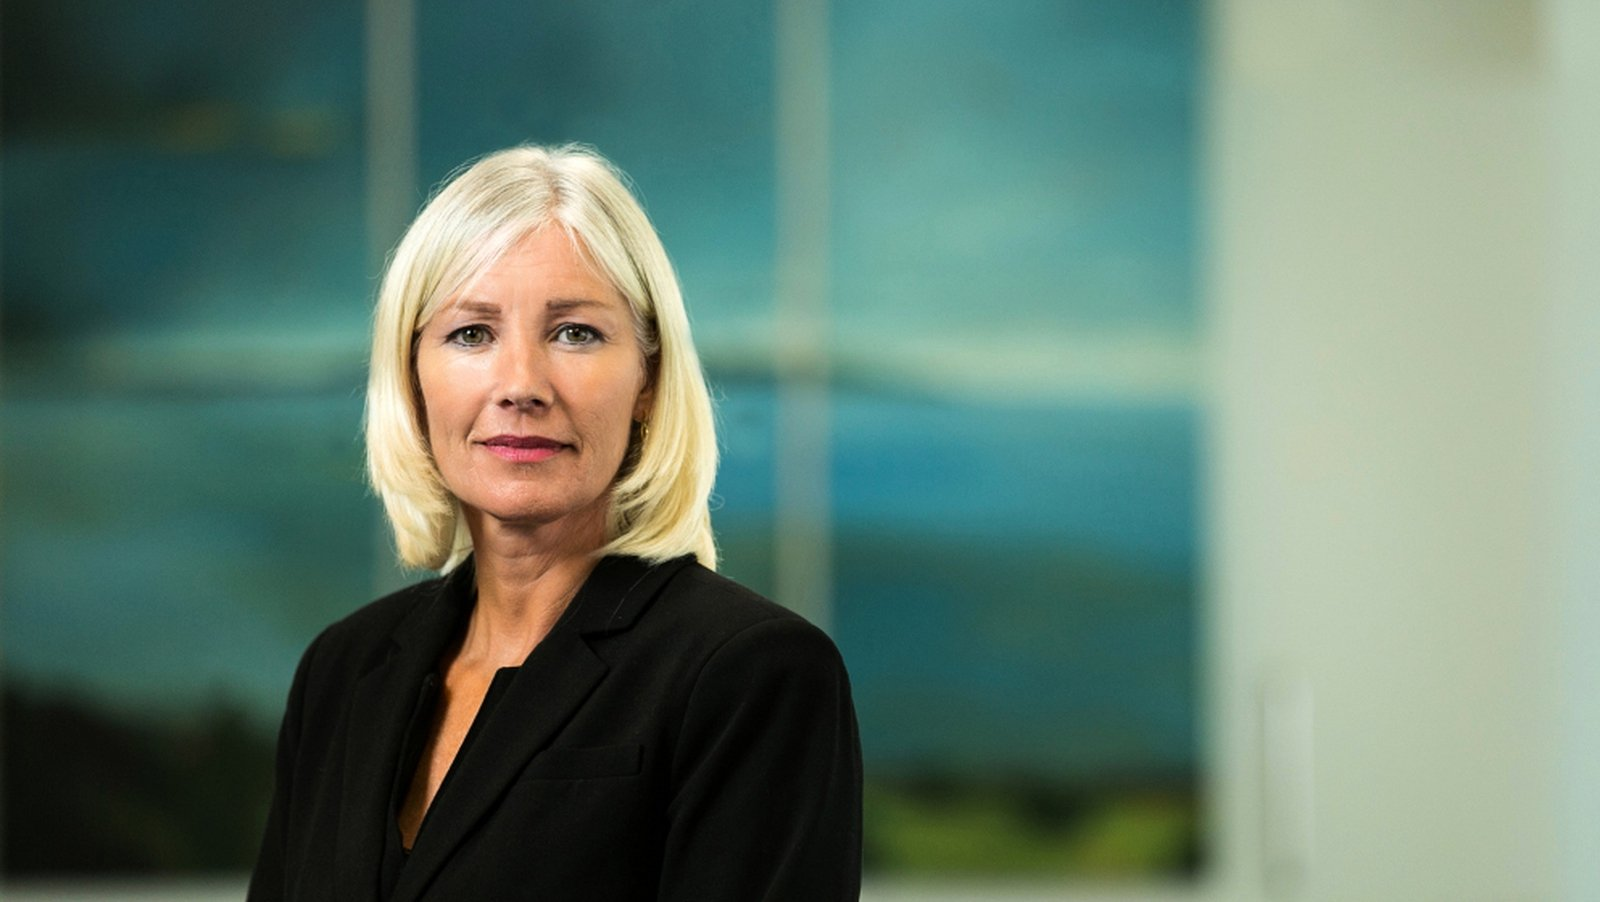 Ulster Bank CEO says 'all options' being considered